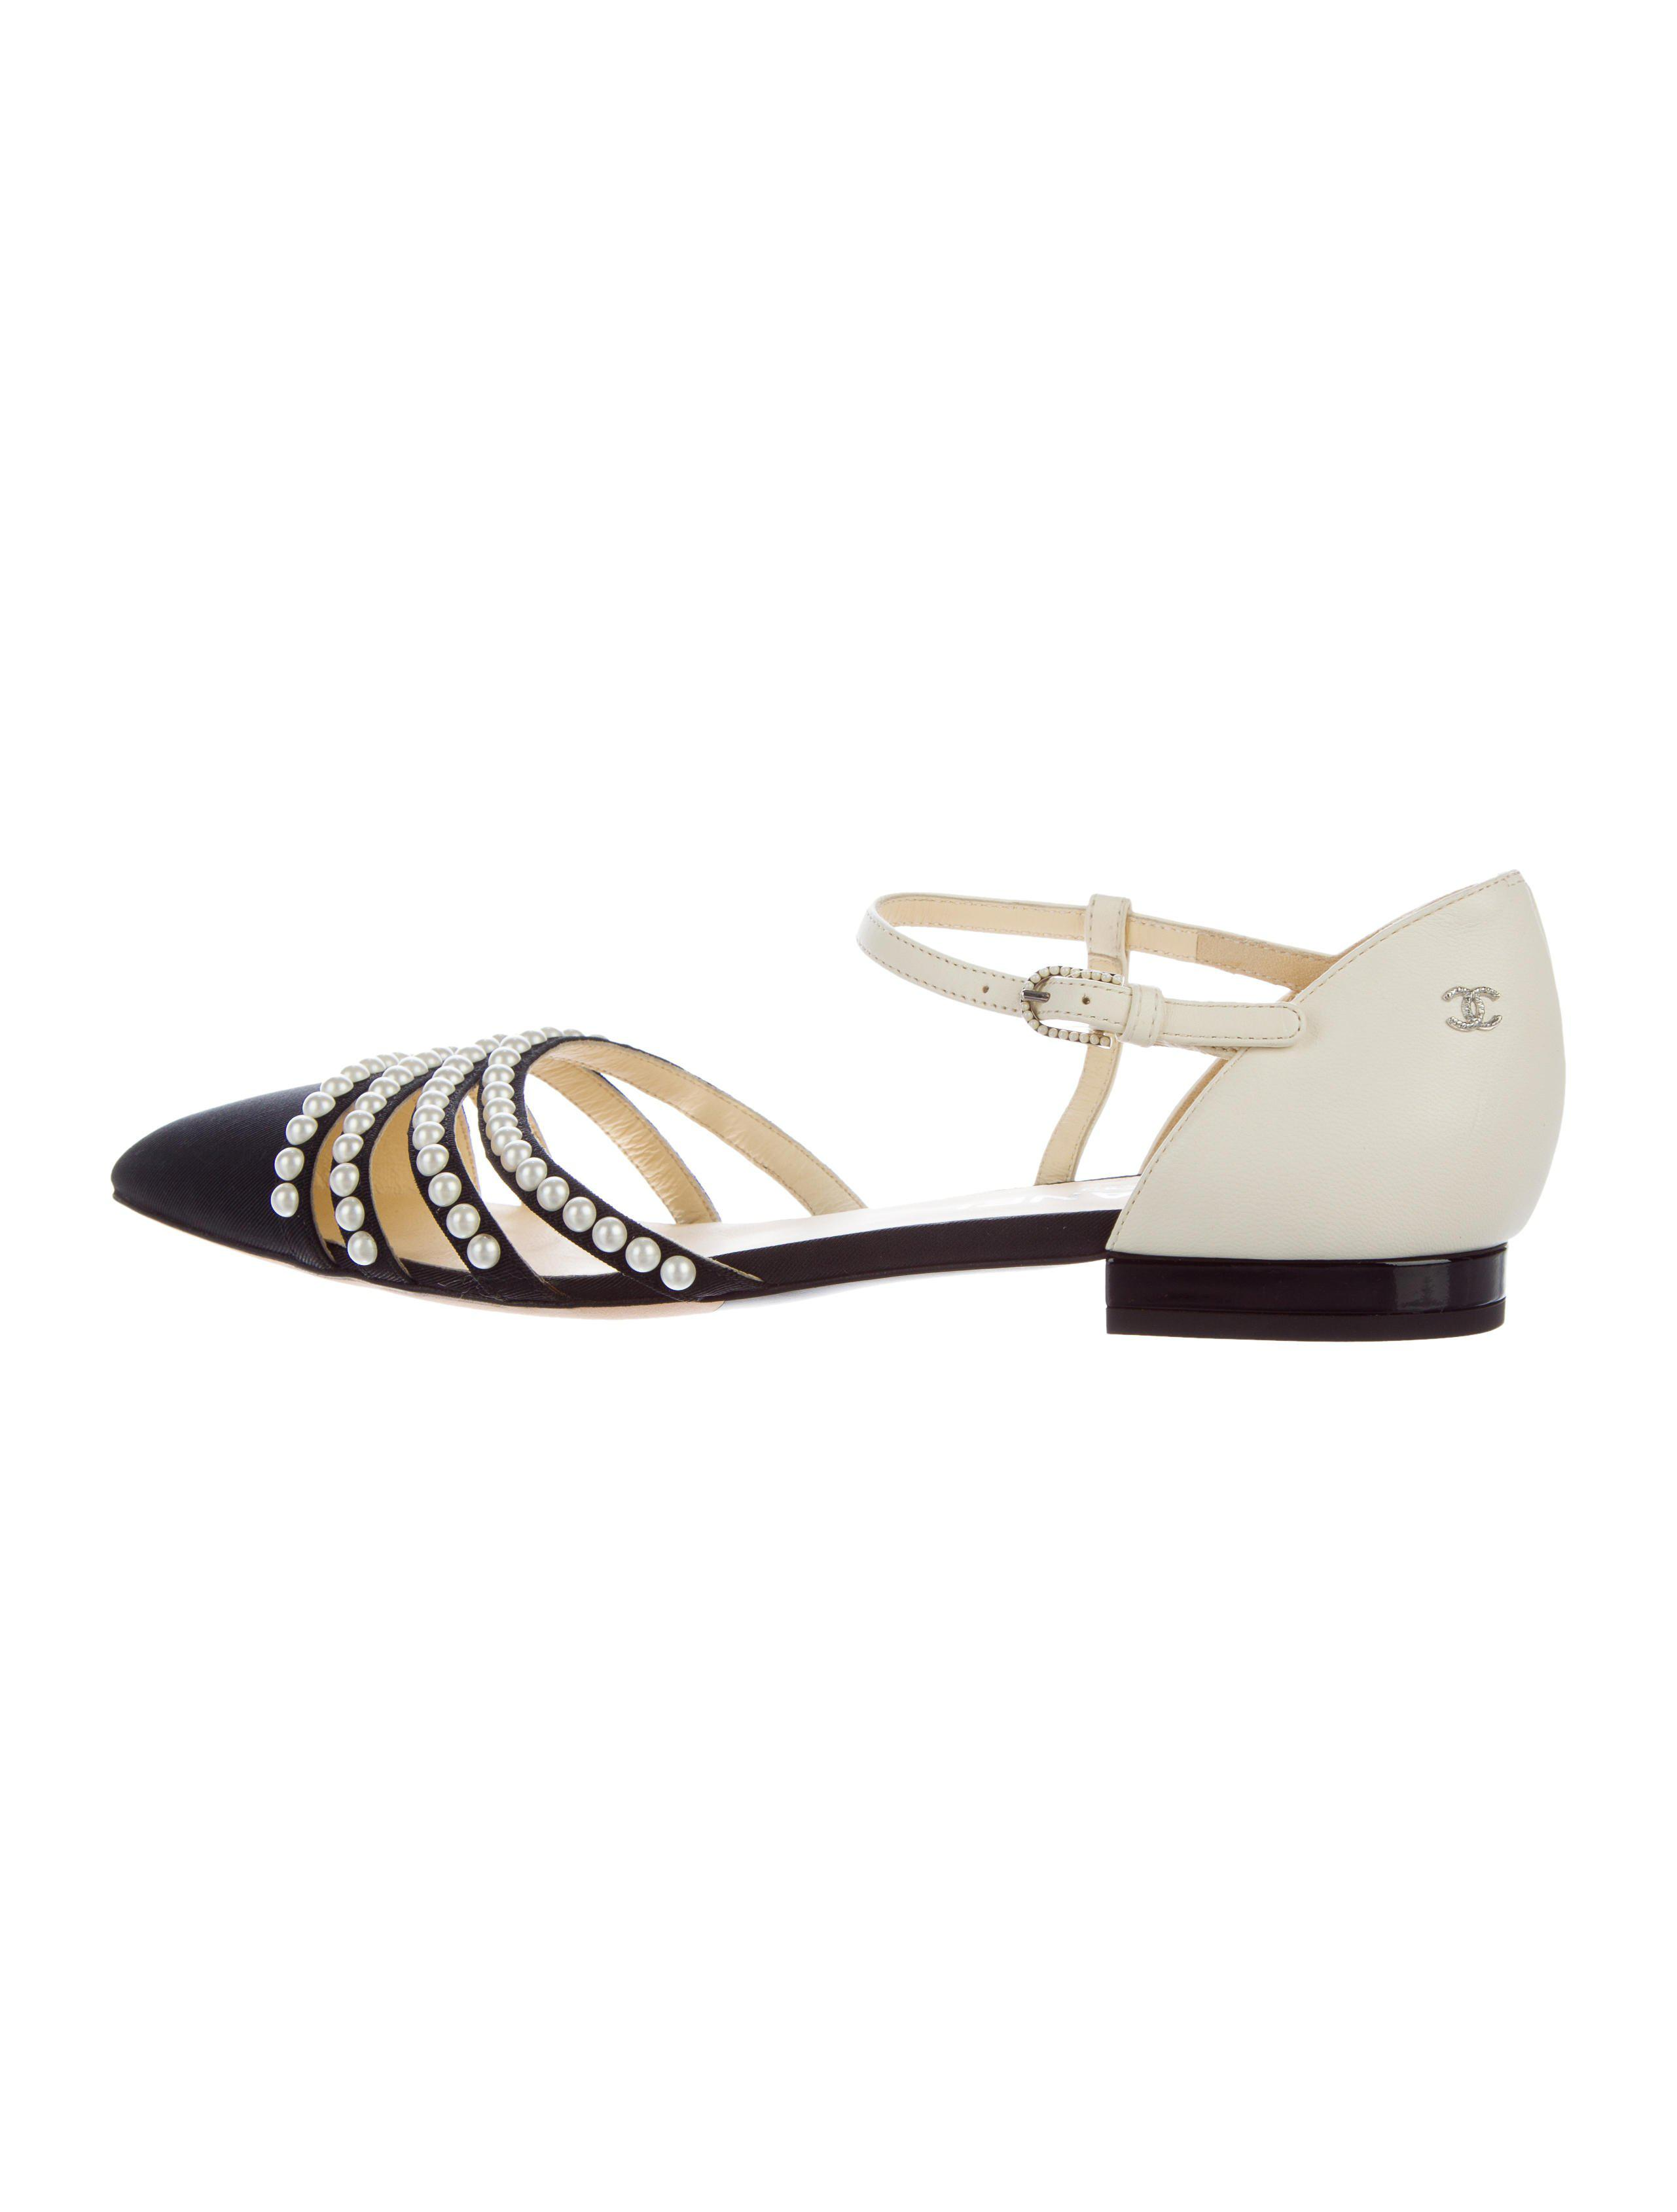 d0feb5cac1bdfa ... Sandals Silver in Metallic arrives 5e89b 2f2a4  Lyst - Chanel Pearl-embellished  Pointed-toe Flats Black in Metallic lowest discount 17cb9 ...